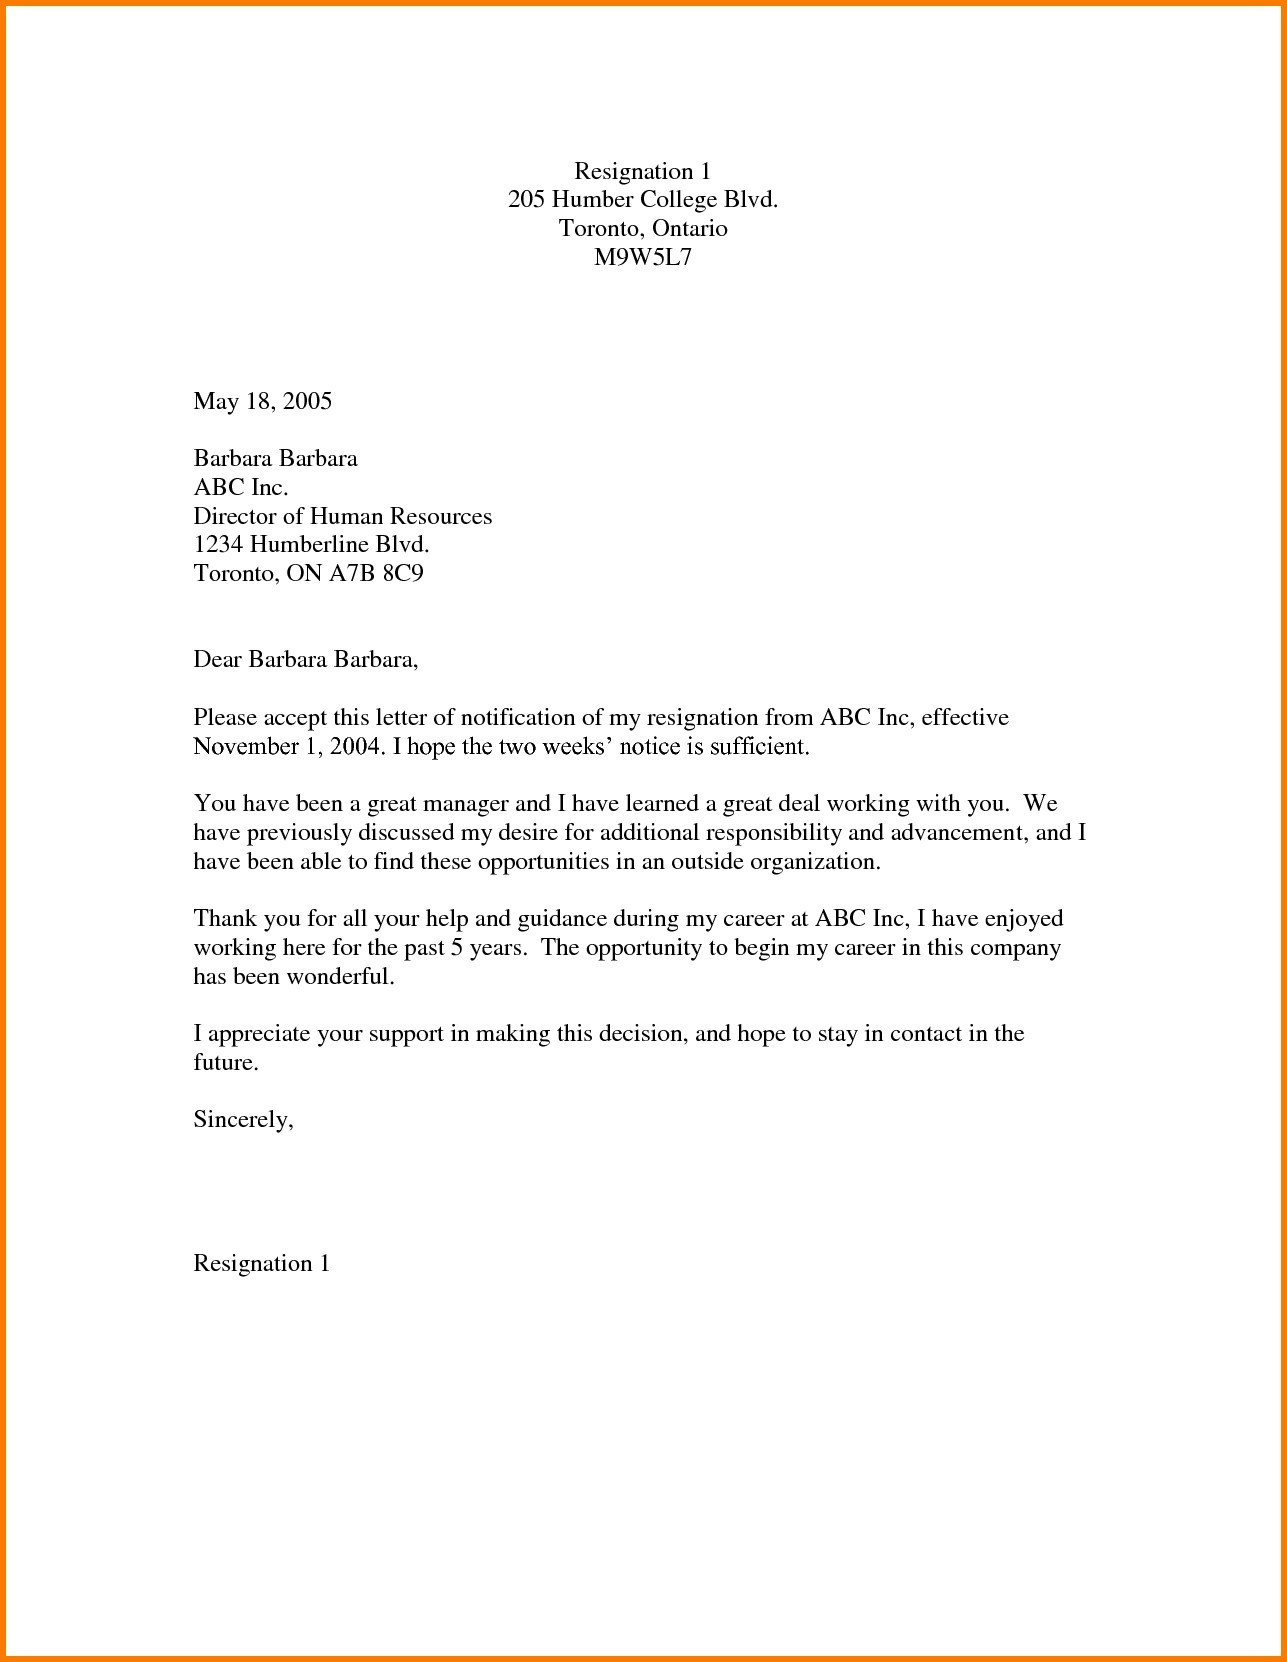 debt collection letter templates free - debt letter template samples letter templates